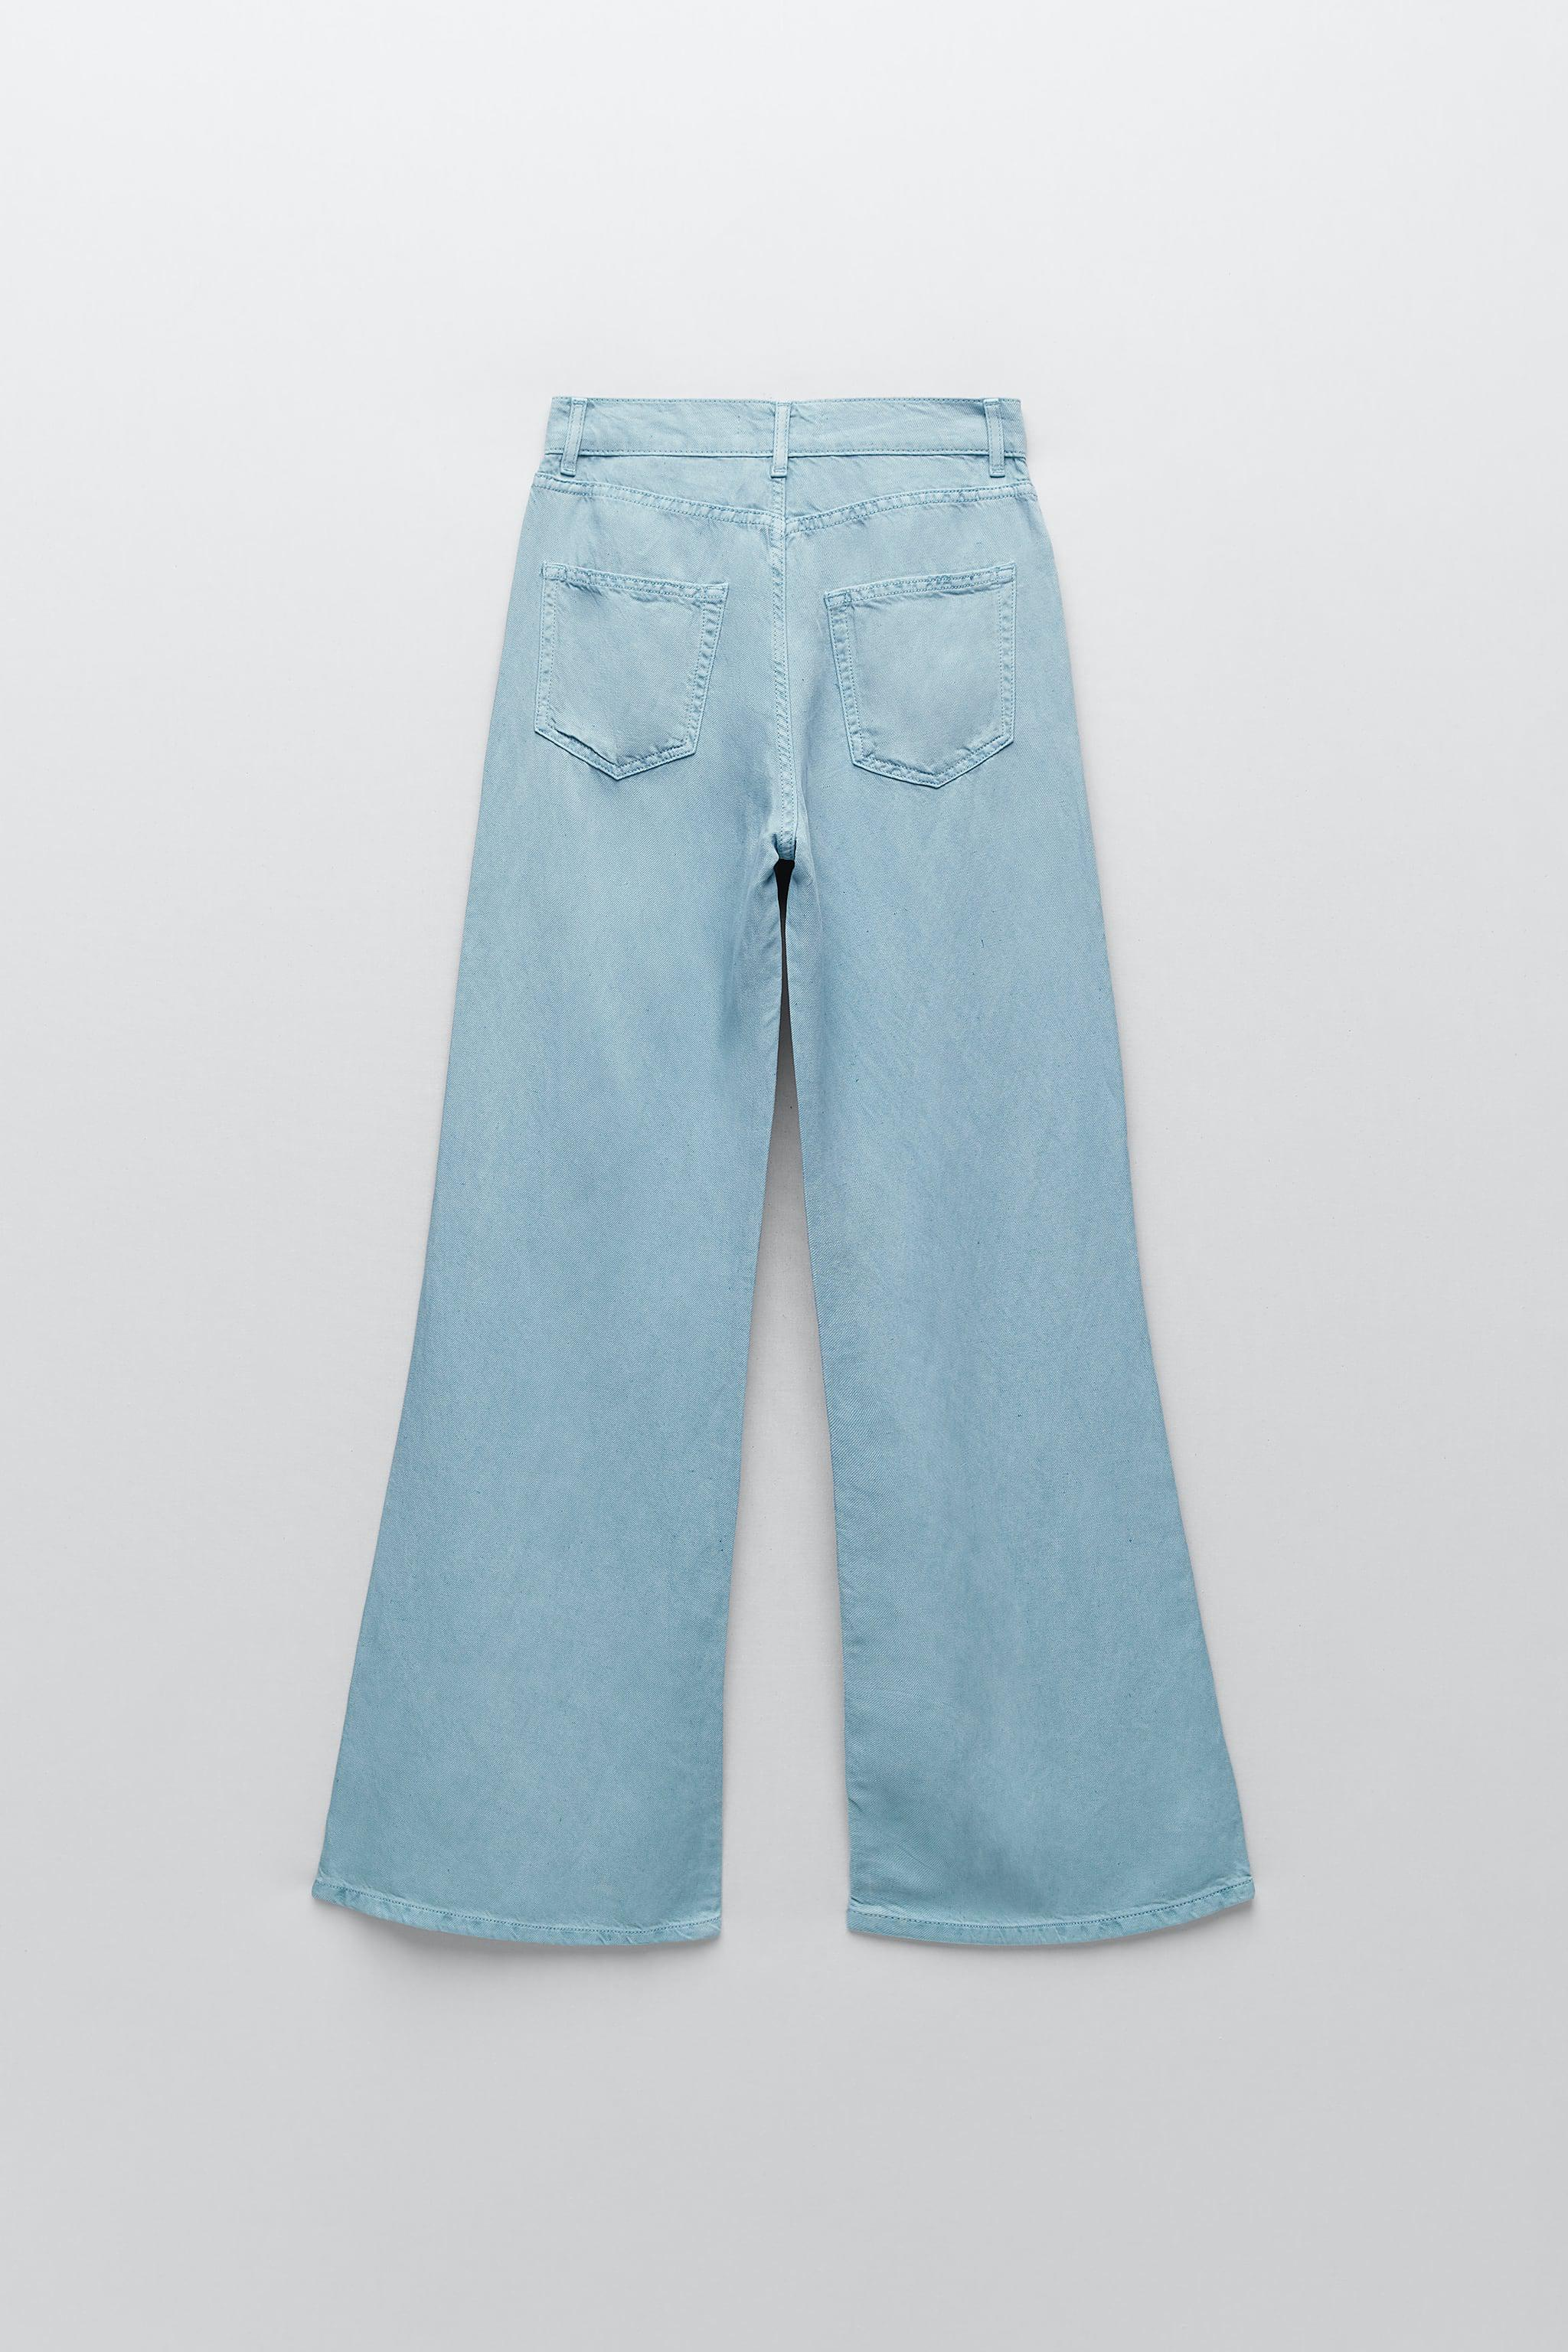 THE DITTA WIDE LEG ZW JEANS 2